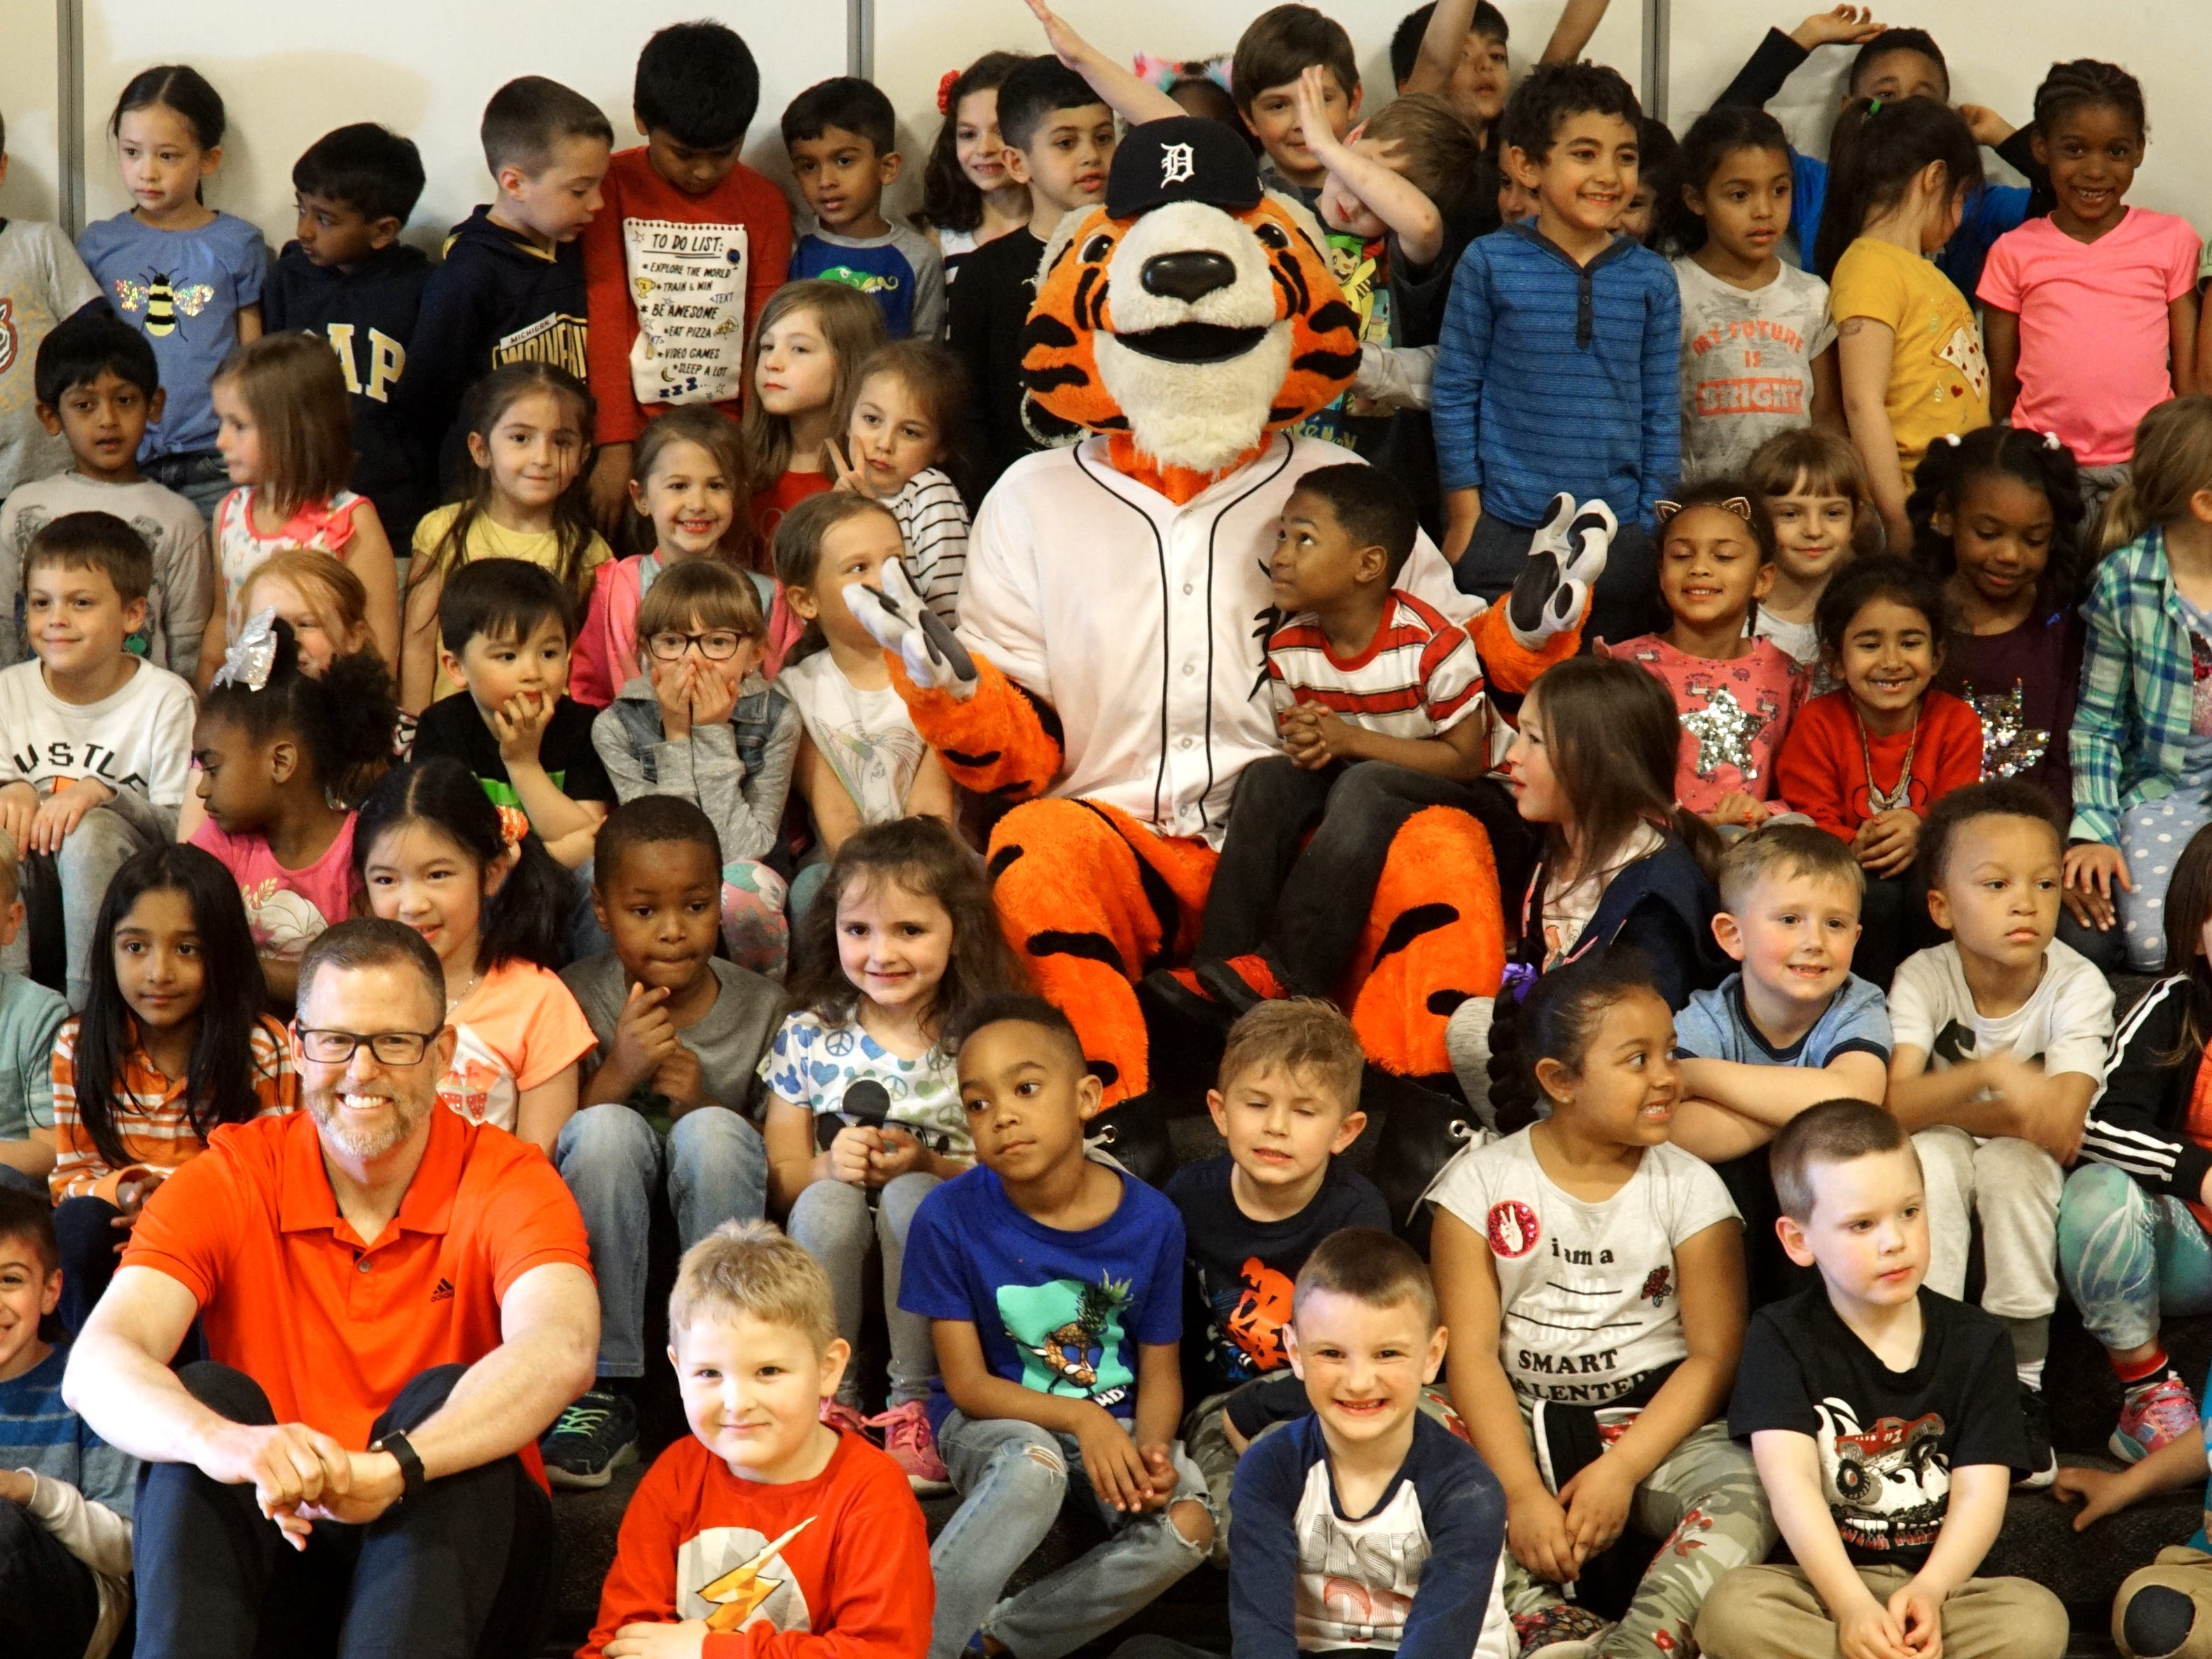 Eriksson principal Kevin Learned, lower left, poses with Paws and students after learning they made it possible for him to throw out a first pitch at a June 26th Tigers' game.